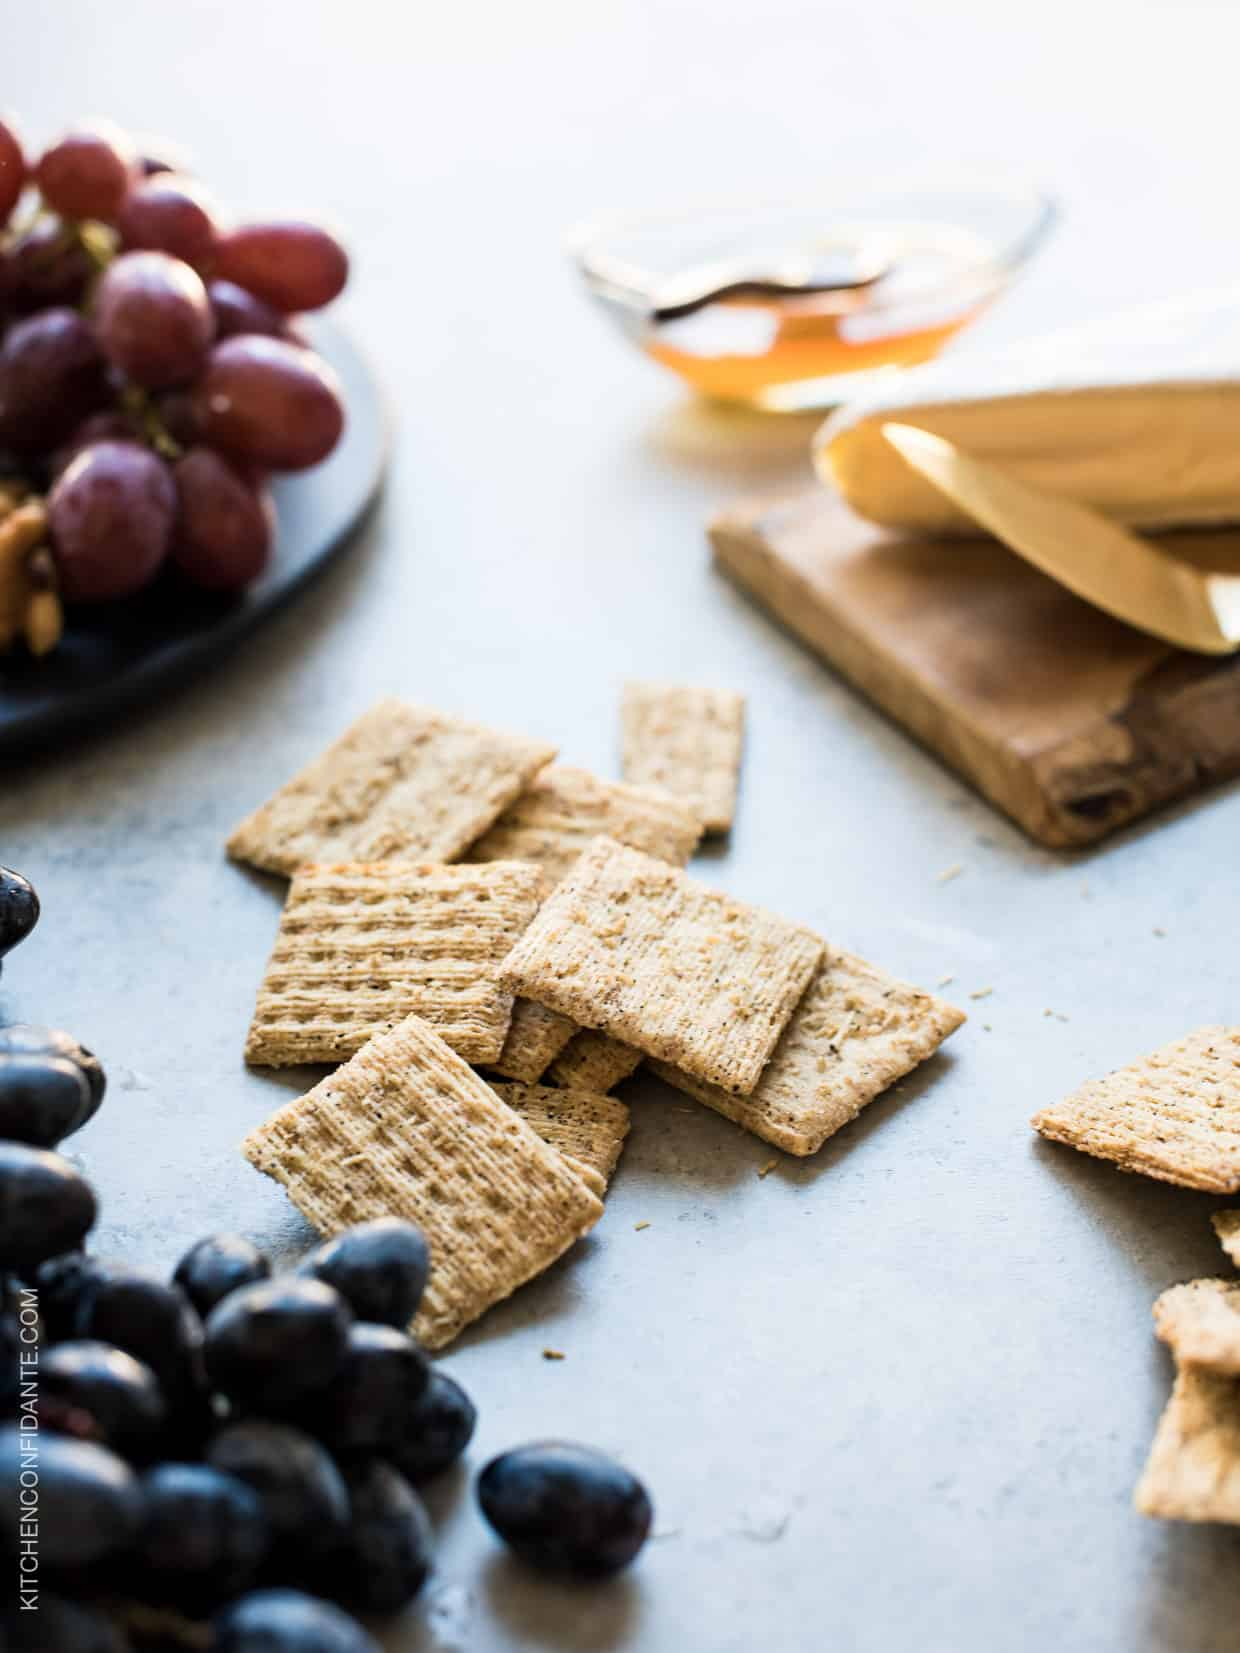 Caramelized Grape, Brie and Walnut Bites: Simple ingredients transform into something delicious on a cracker, making these bites the perfect snack!